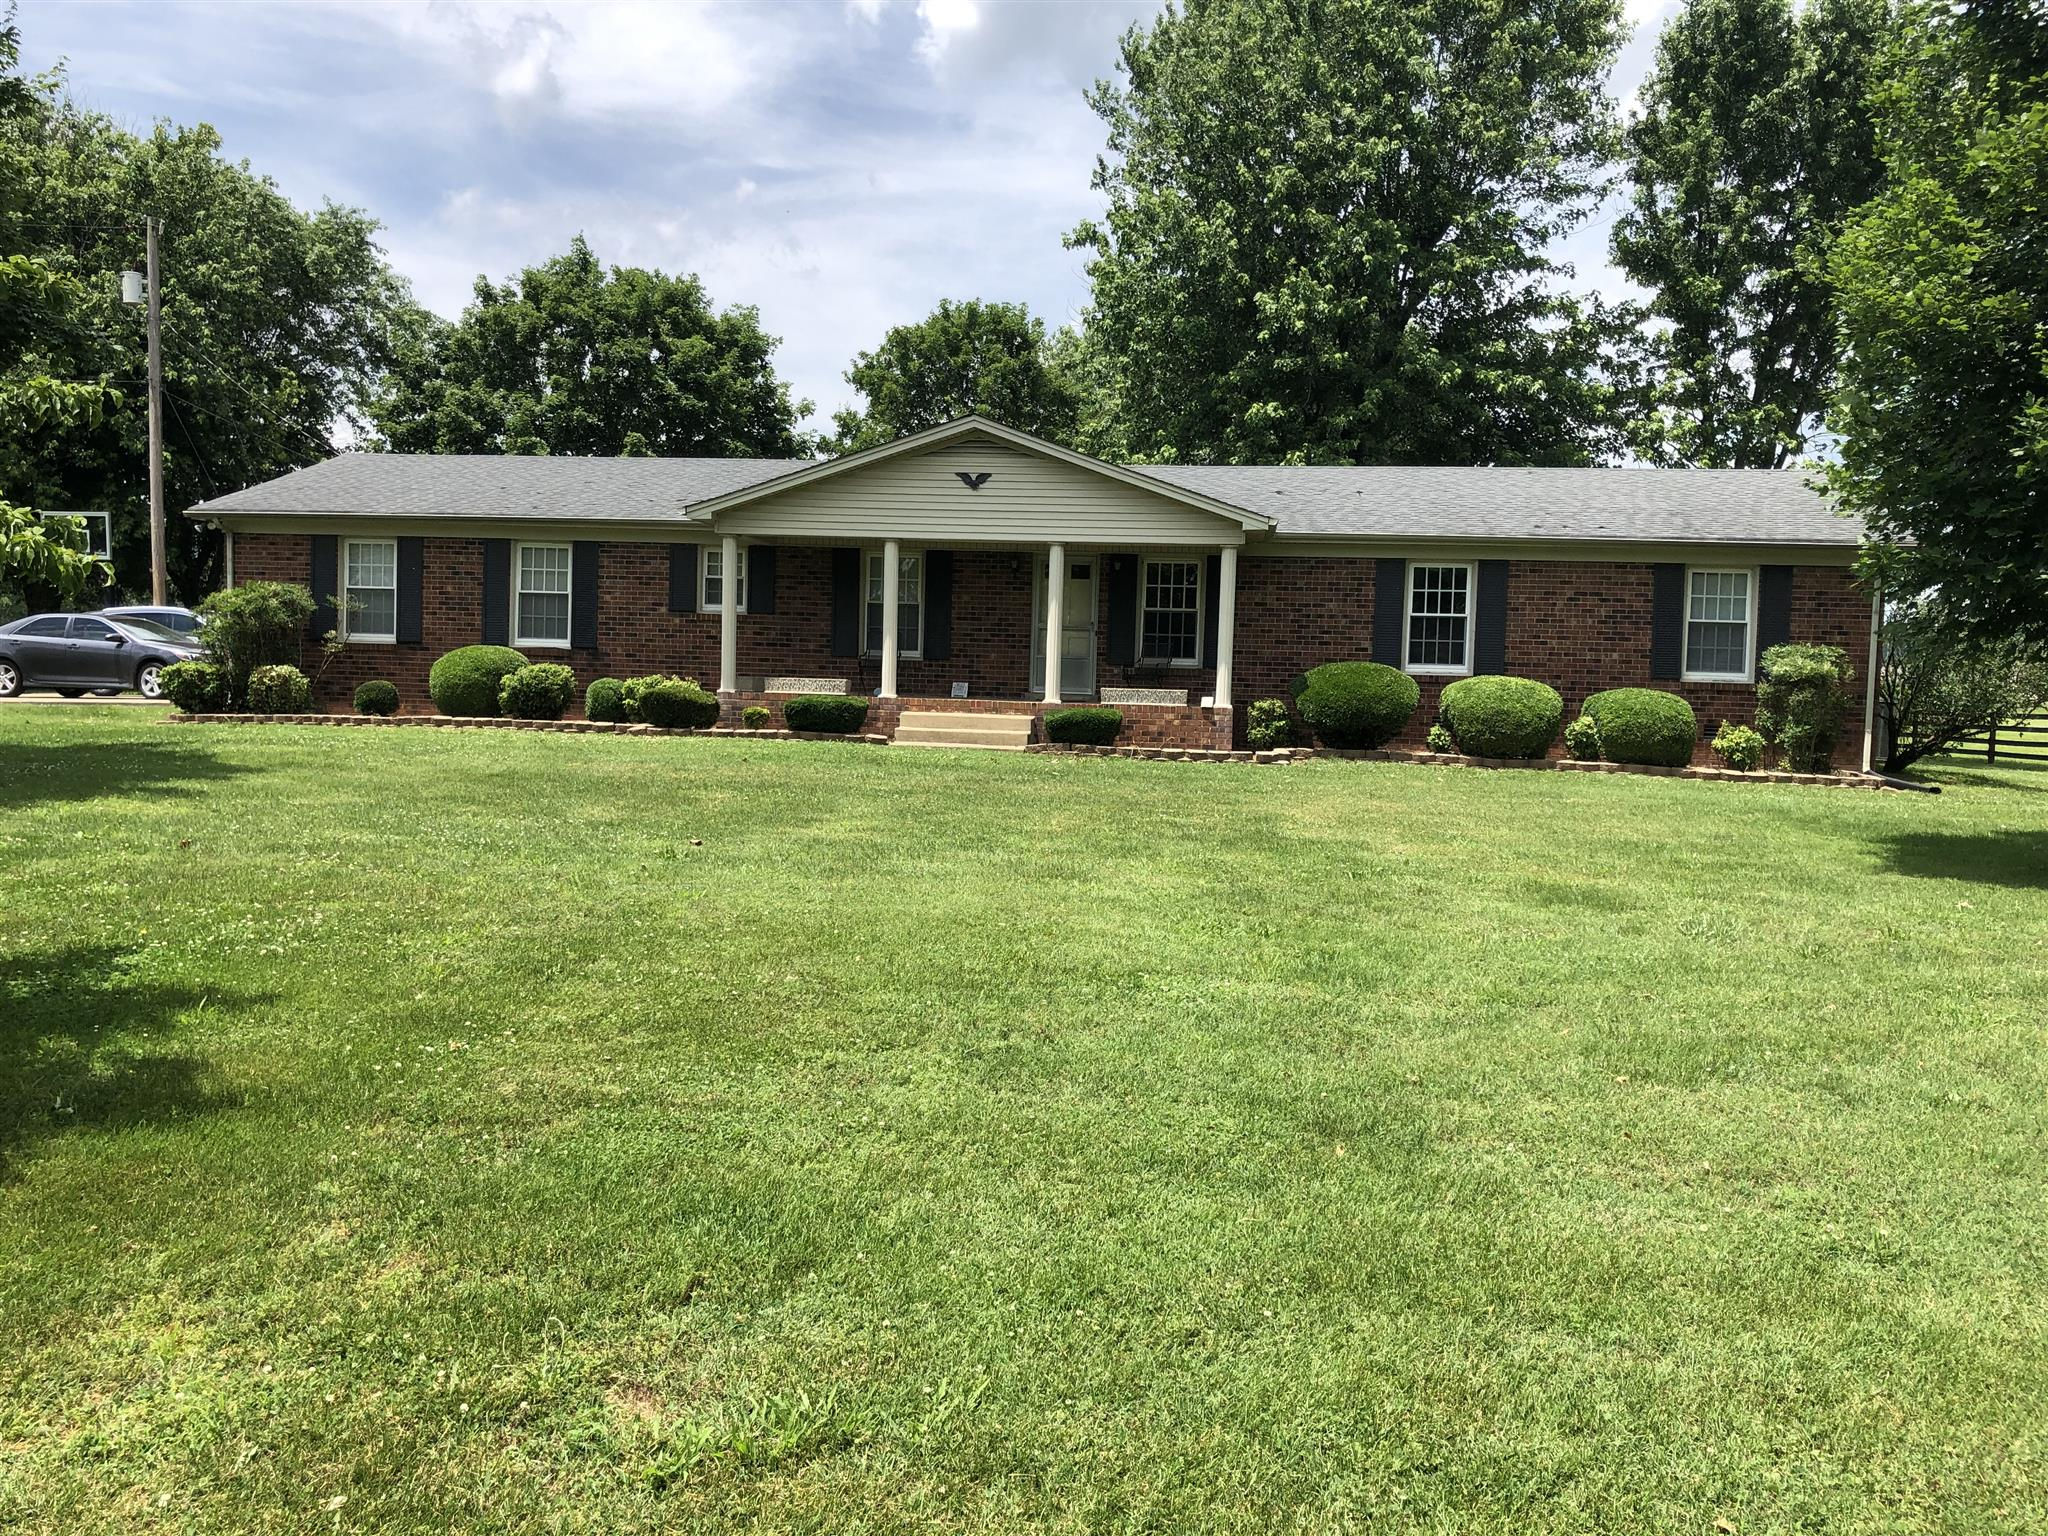 863 Old Military Rd, Spring Hill, TN 37174 - Spring Hill, TN real estate listing